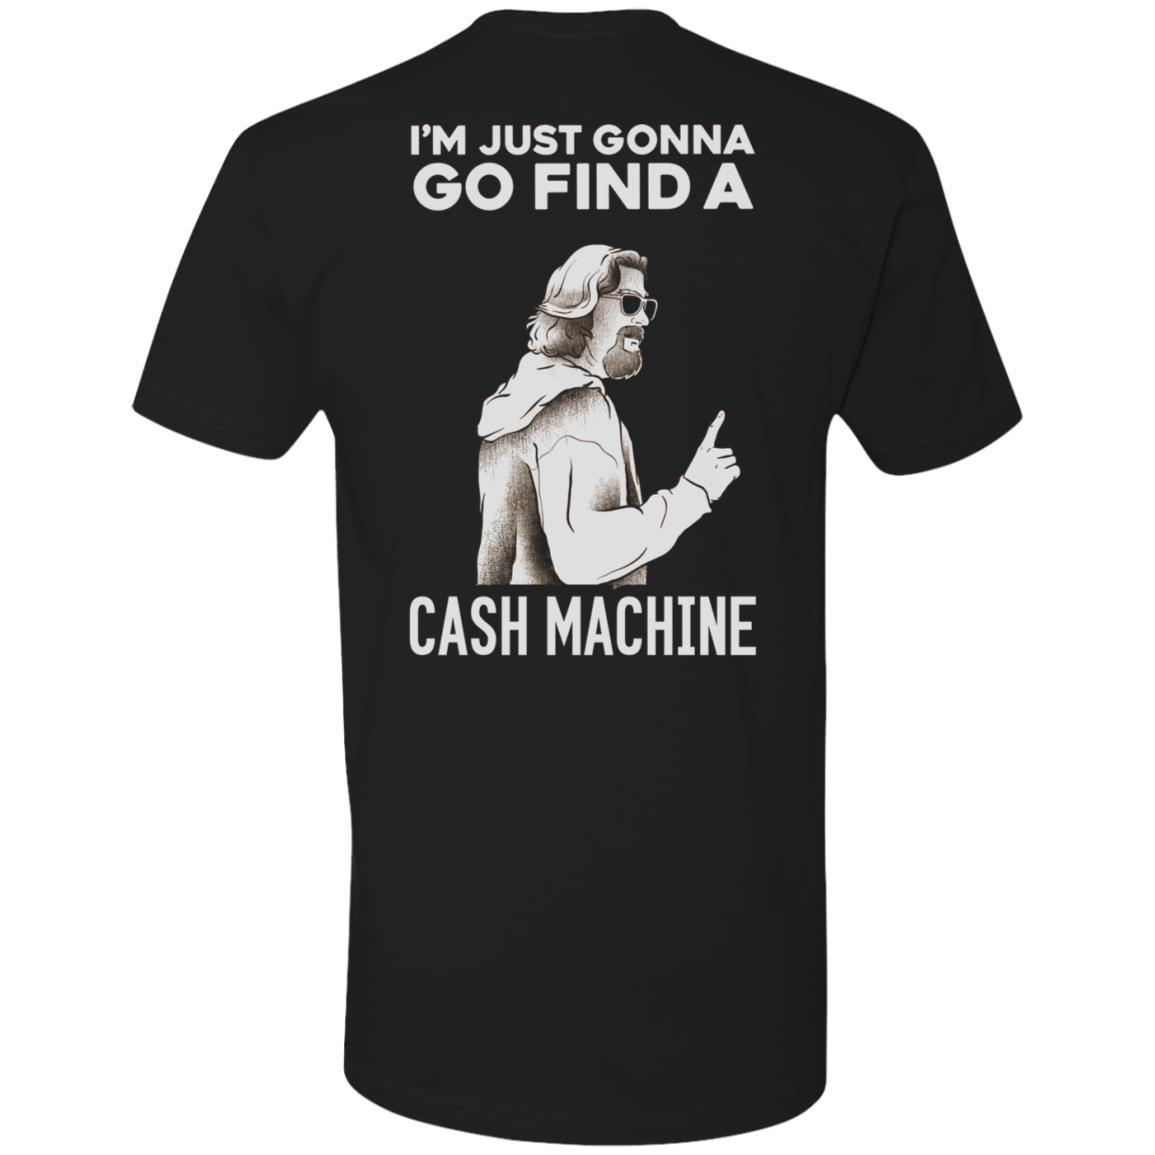 Cash Machine Premium Tee